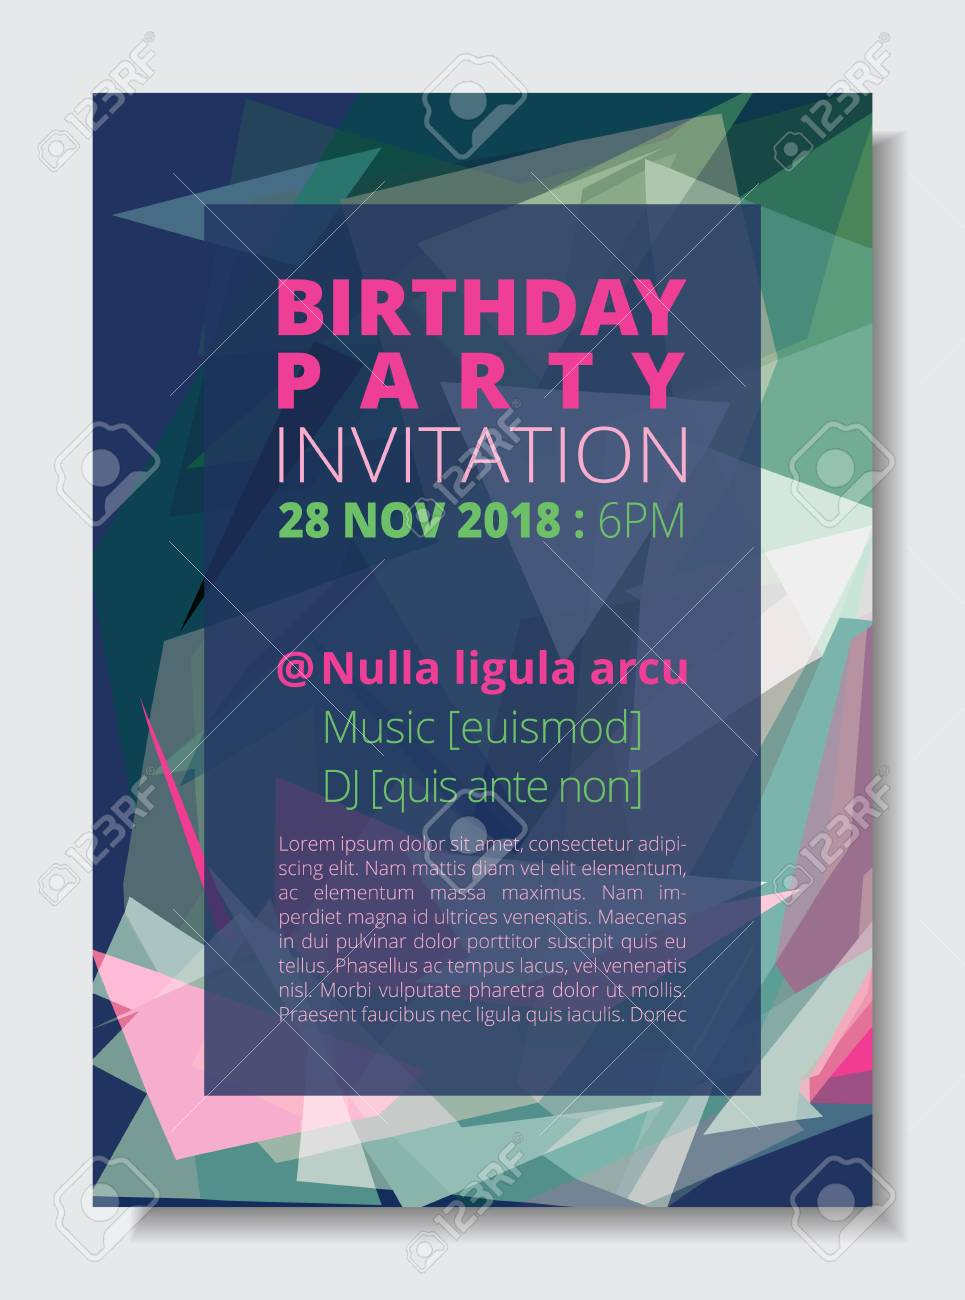 Birthday Party Invitation Card Template A4 Size, Colorful Abstract ...